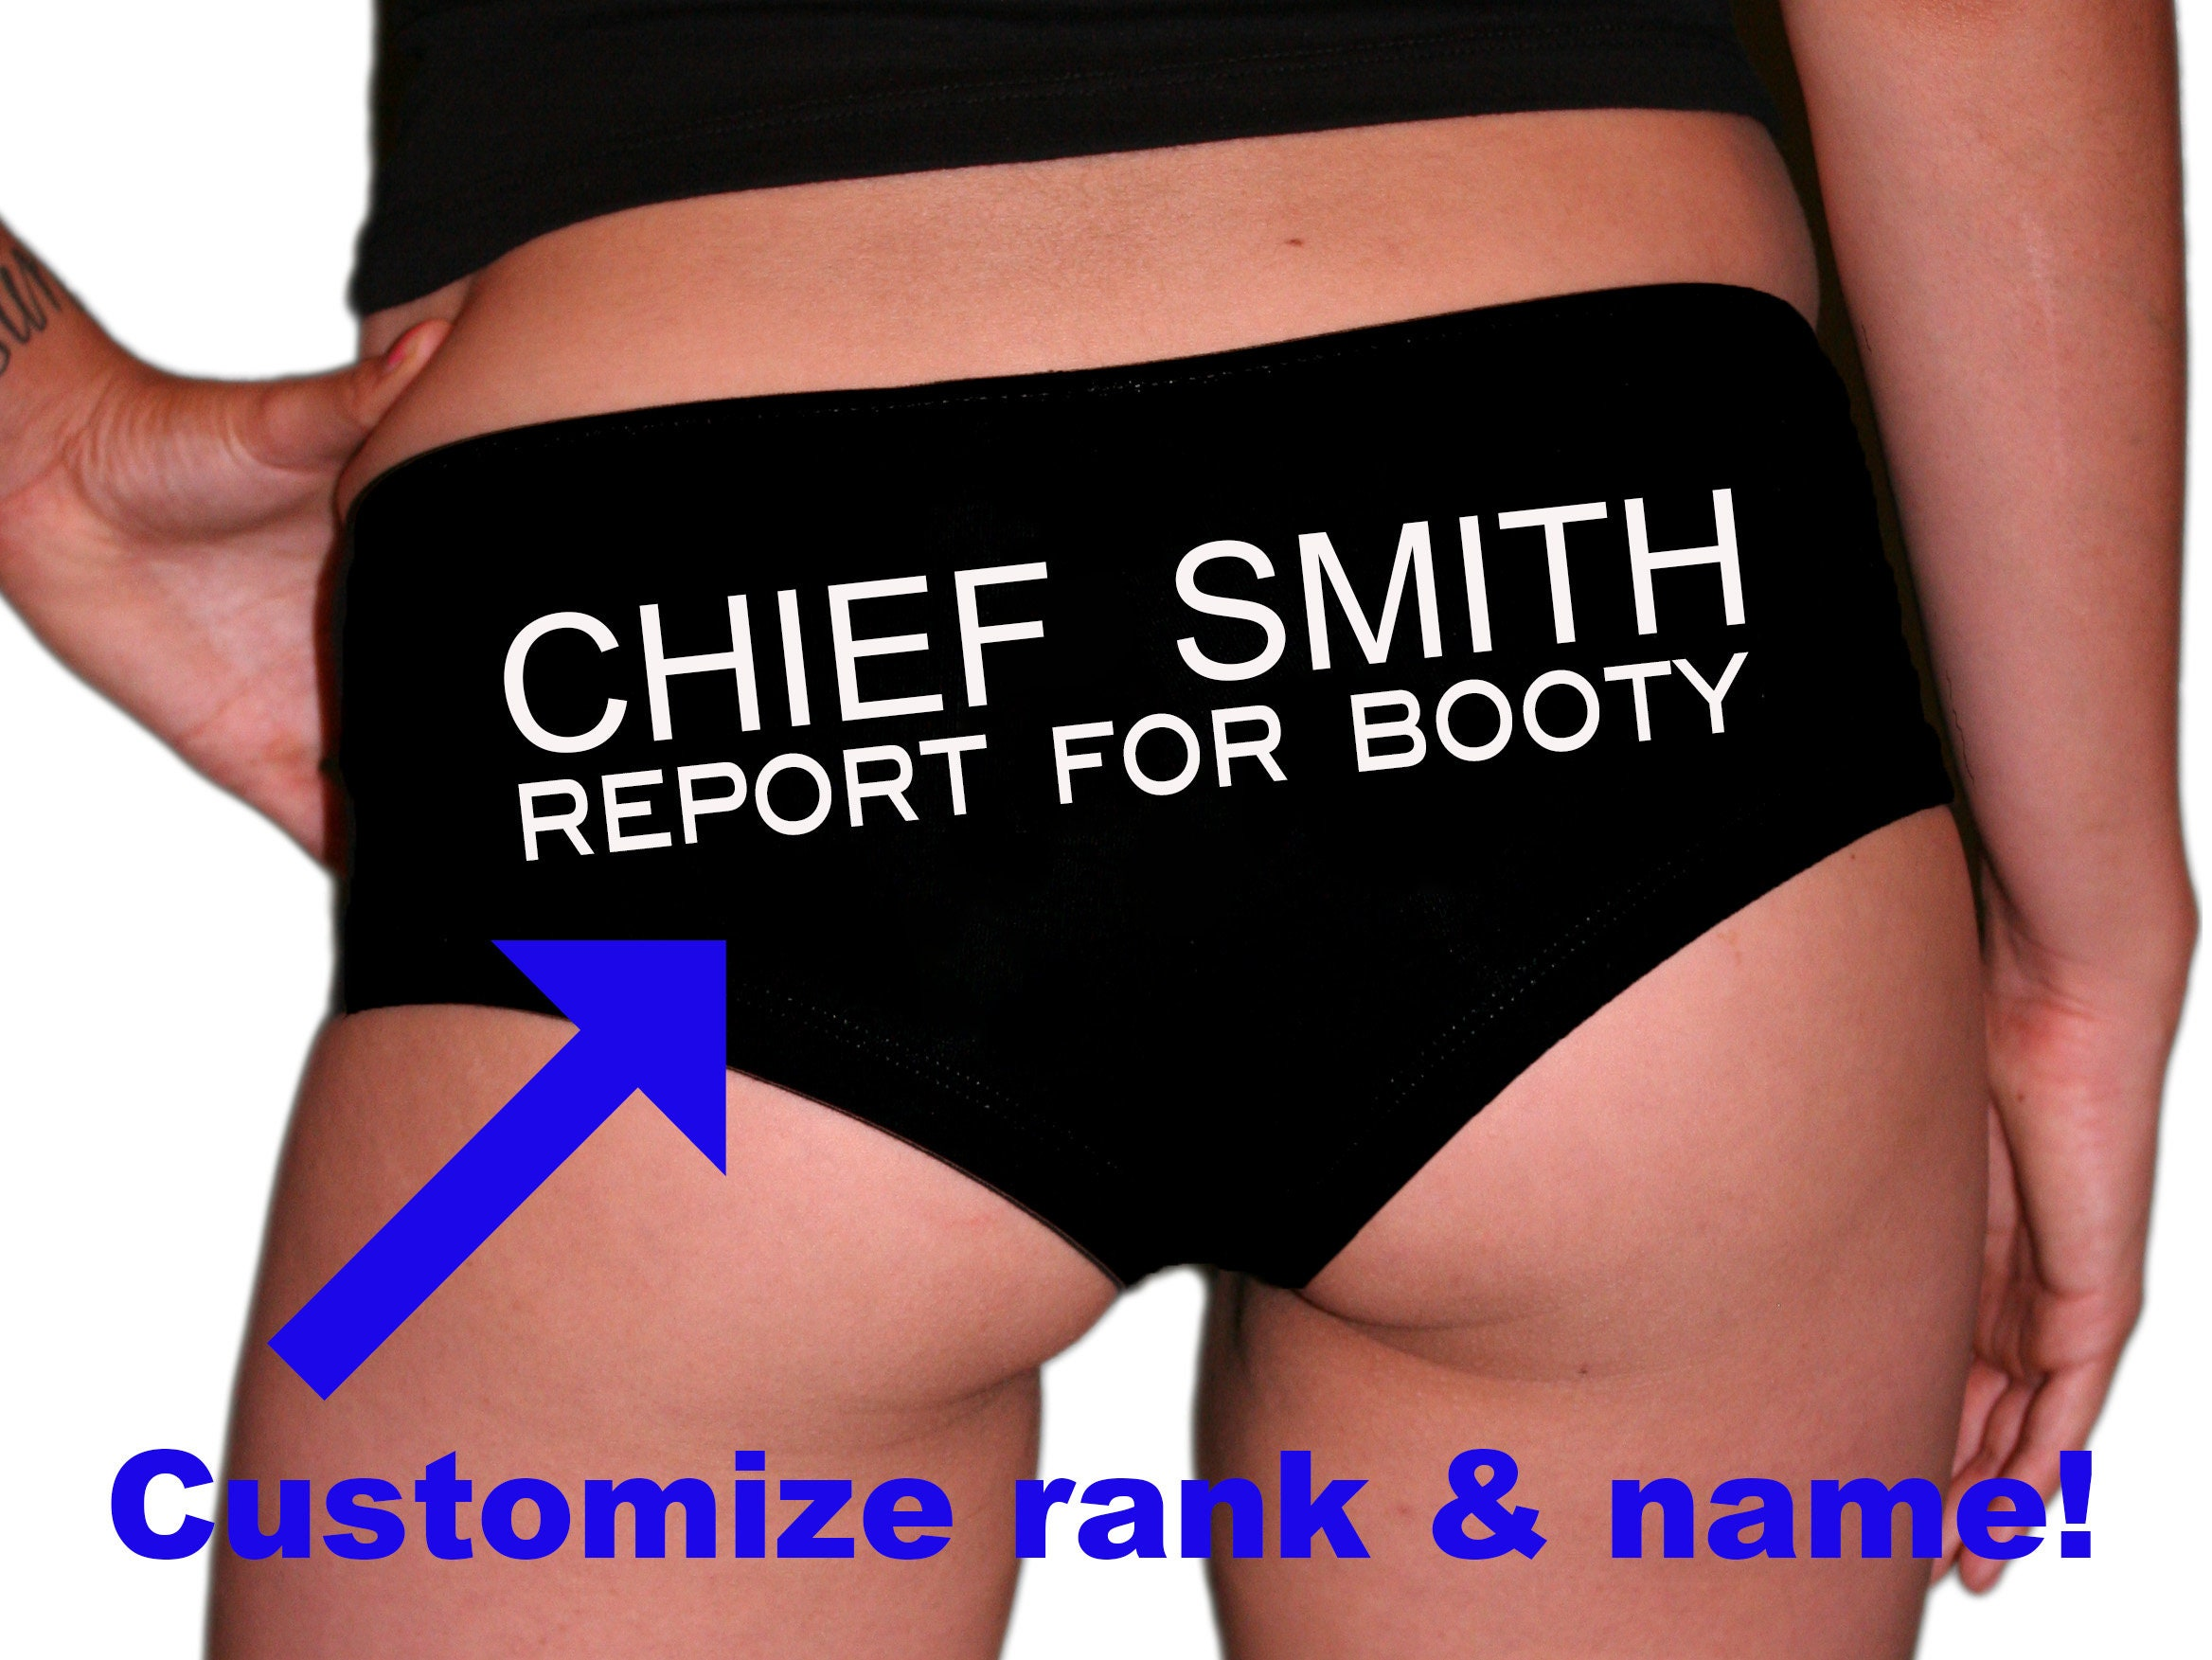 Underwear. Thong Fireman Gift Firefighter Wife Custom Firefighter Gift Panties Firefighter Husband Report For Booty Firefighter